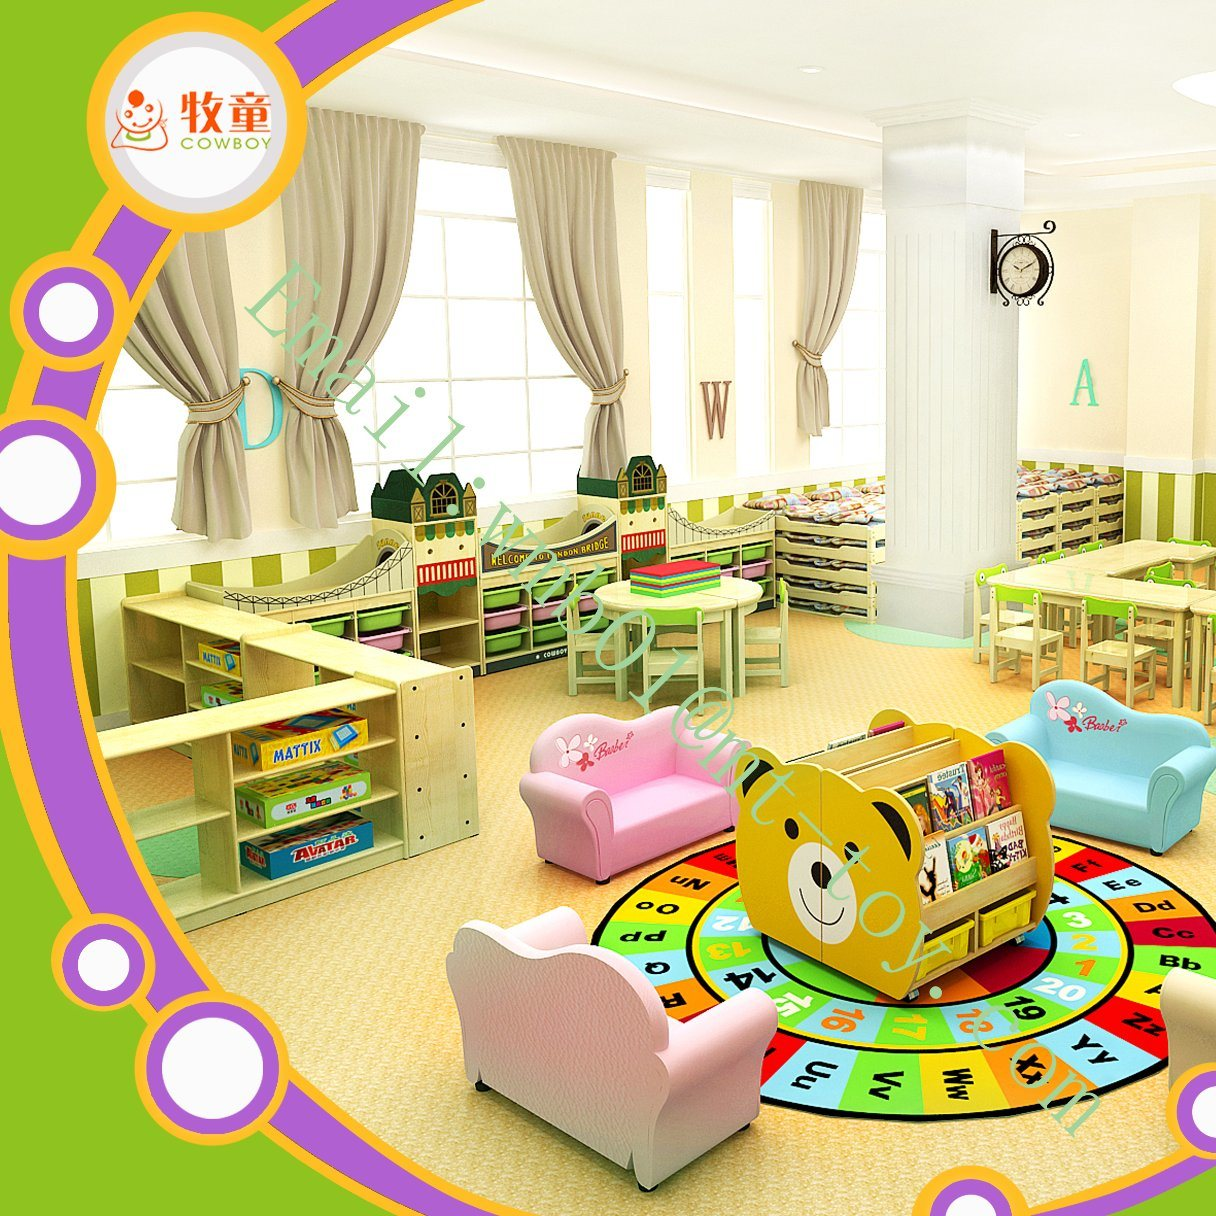 China Wholesale Price Nursery School Furniture School Furniture - Nursery tables and chairs